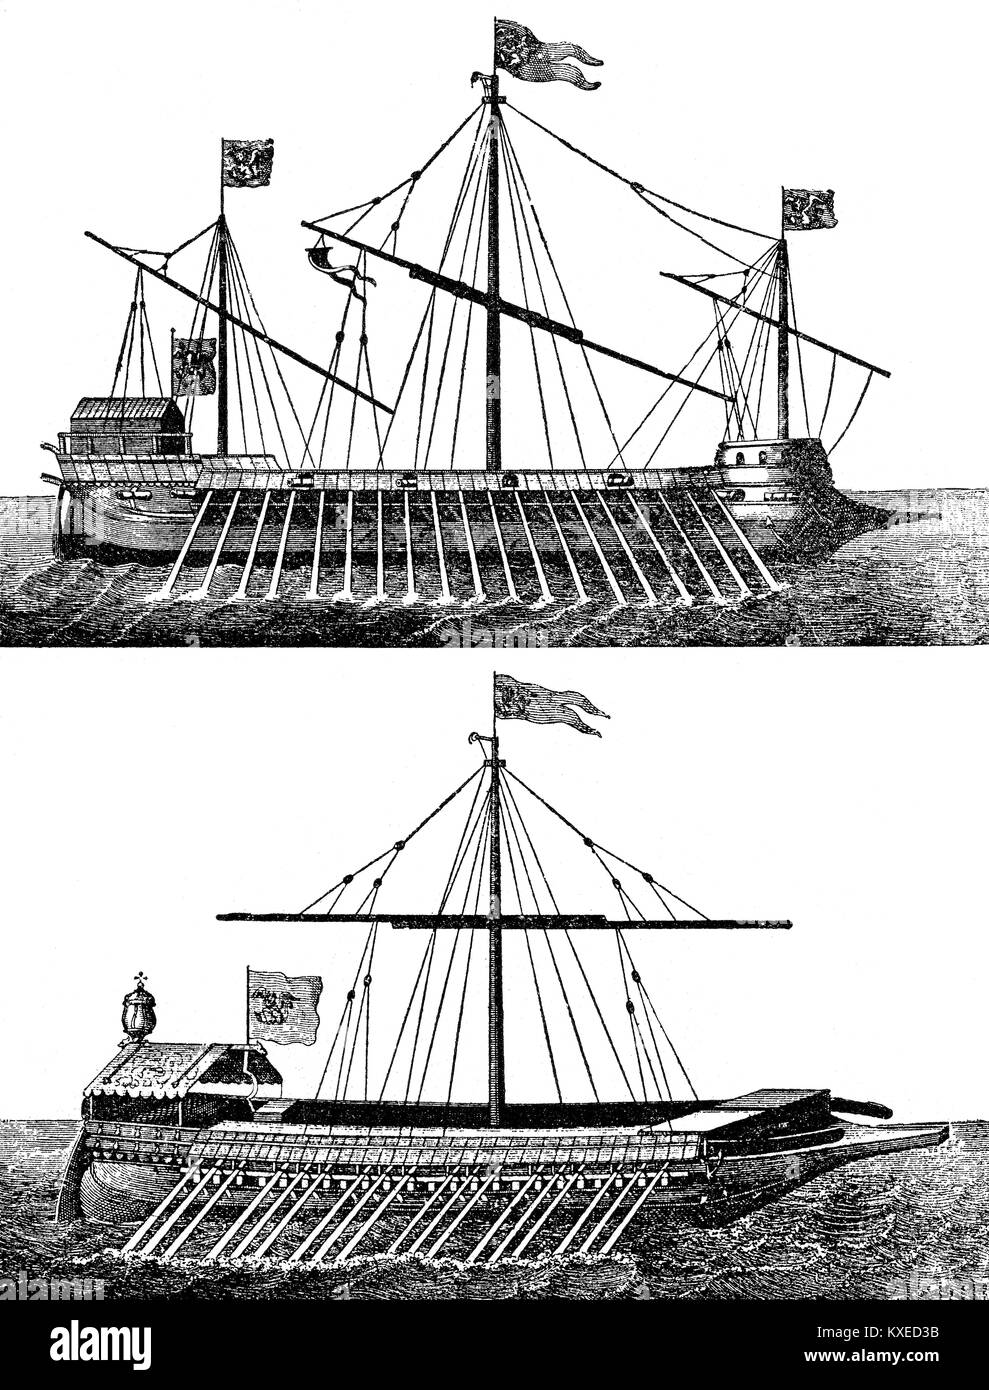 Venetian galleys used at the Battle of Lepanto, 16th century Stock Photo